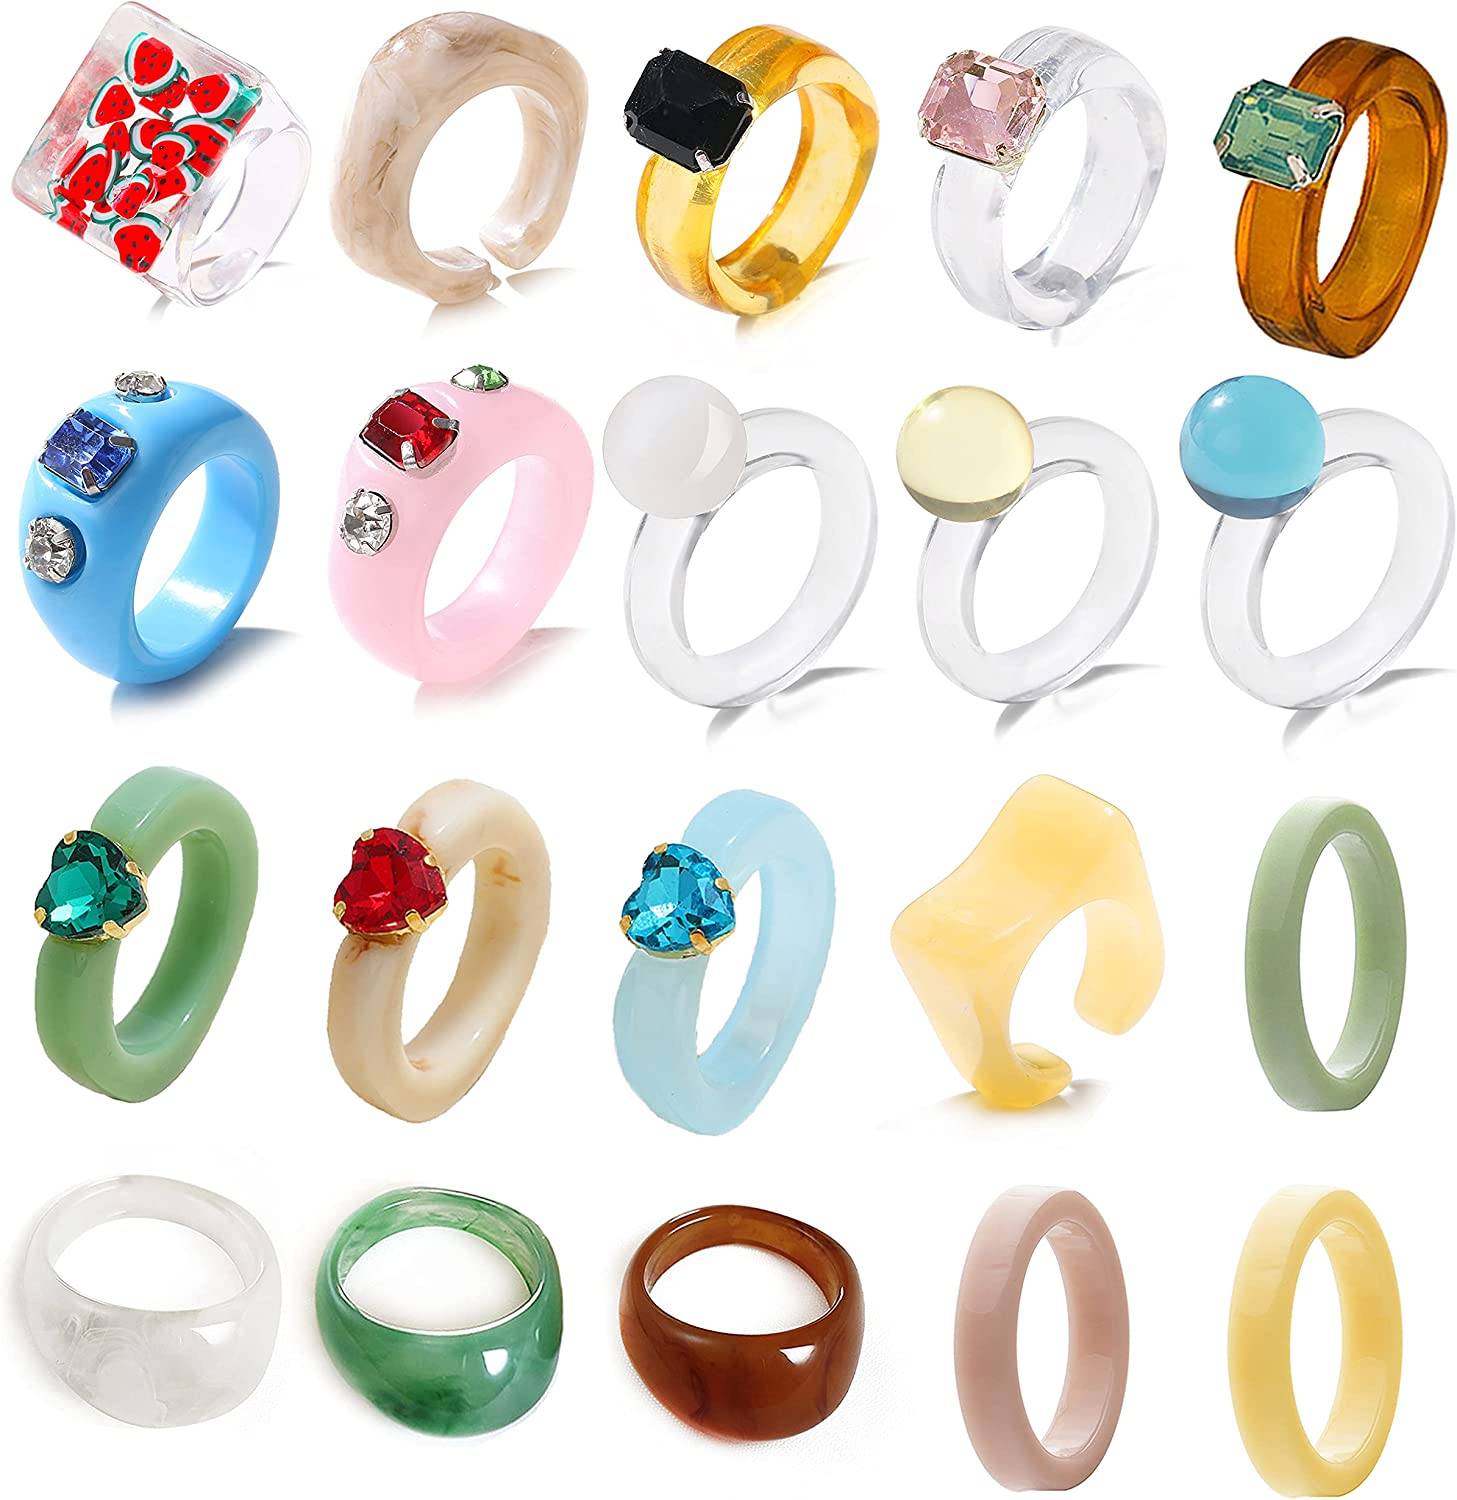 CASDAN 20Pcs Resin Rings Acrylic Cute Trendy Rings Colorful Rhinestone Y2k Rings Jewelry Plastic Resin Square Gem Stackable Chunky Ring for Women Girls (size 6-8)